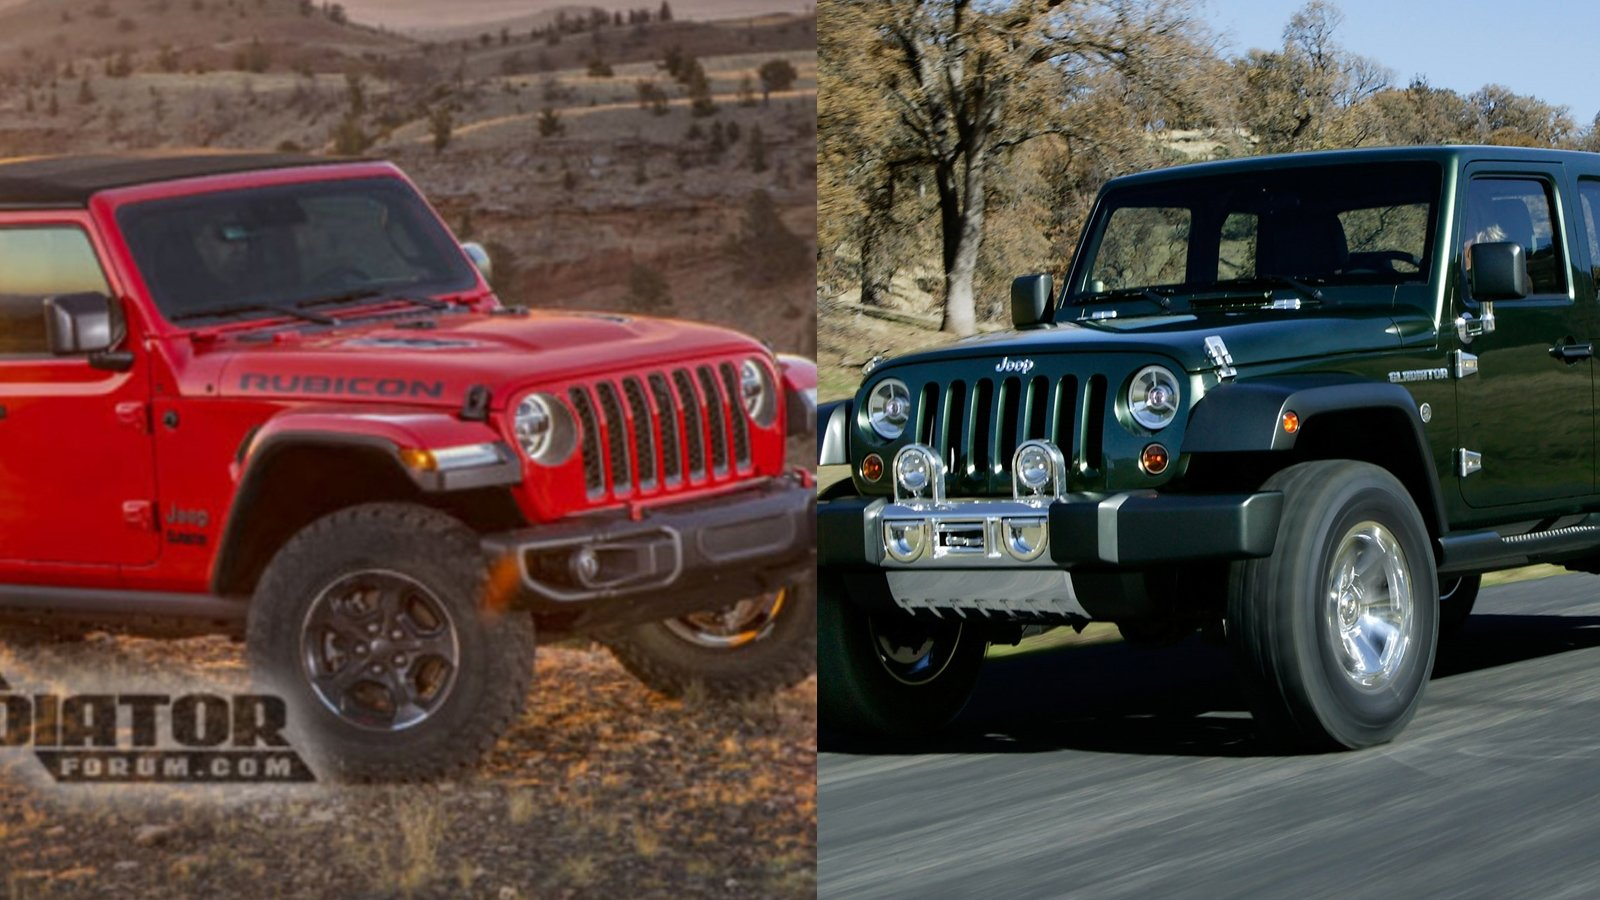 Visual Comparison Between The 2020 Jeep Gladiator And The 2005 Jeep Gladiator Concept | Top Speed